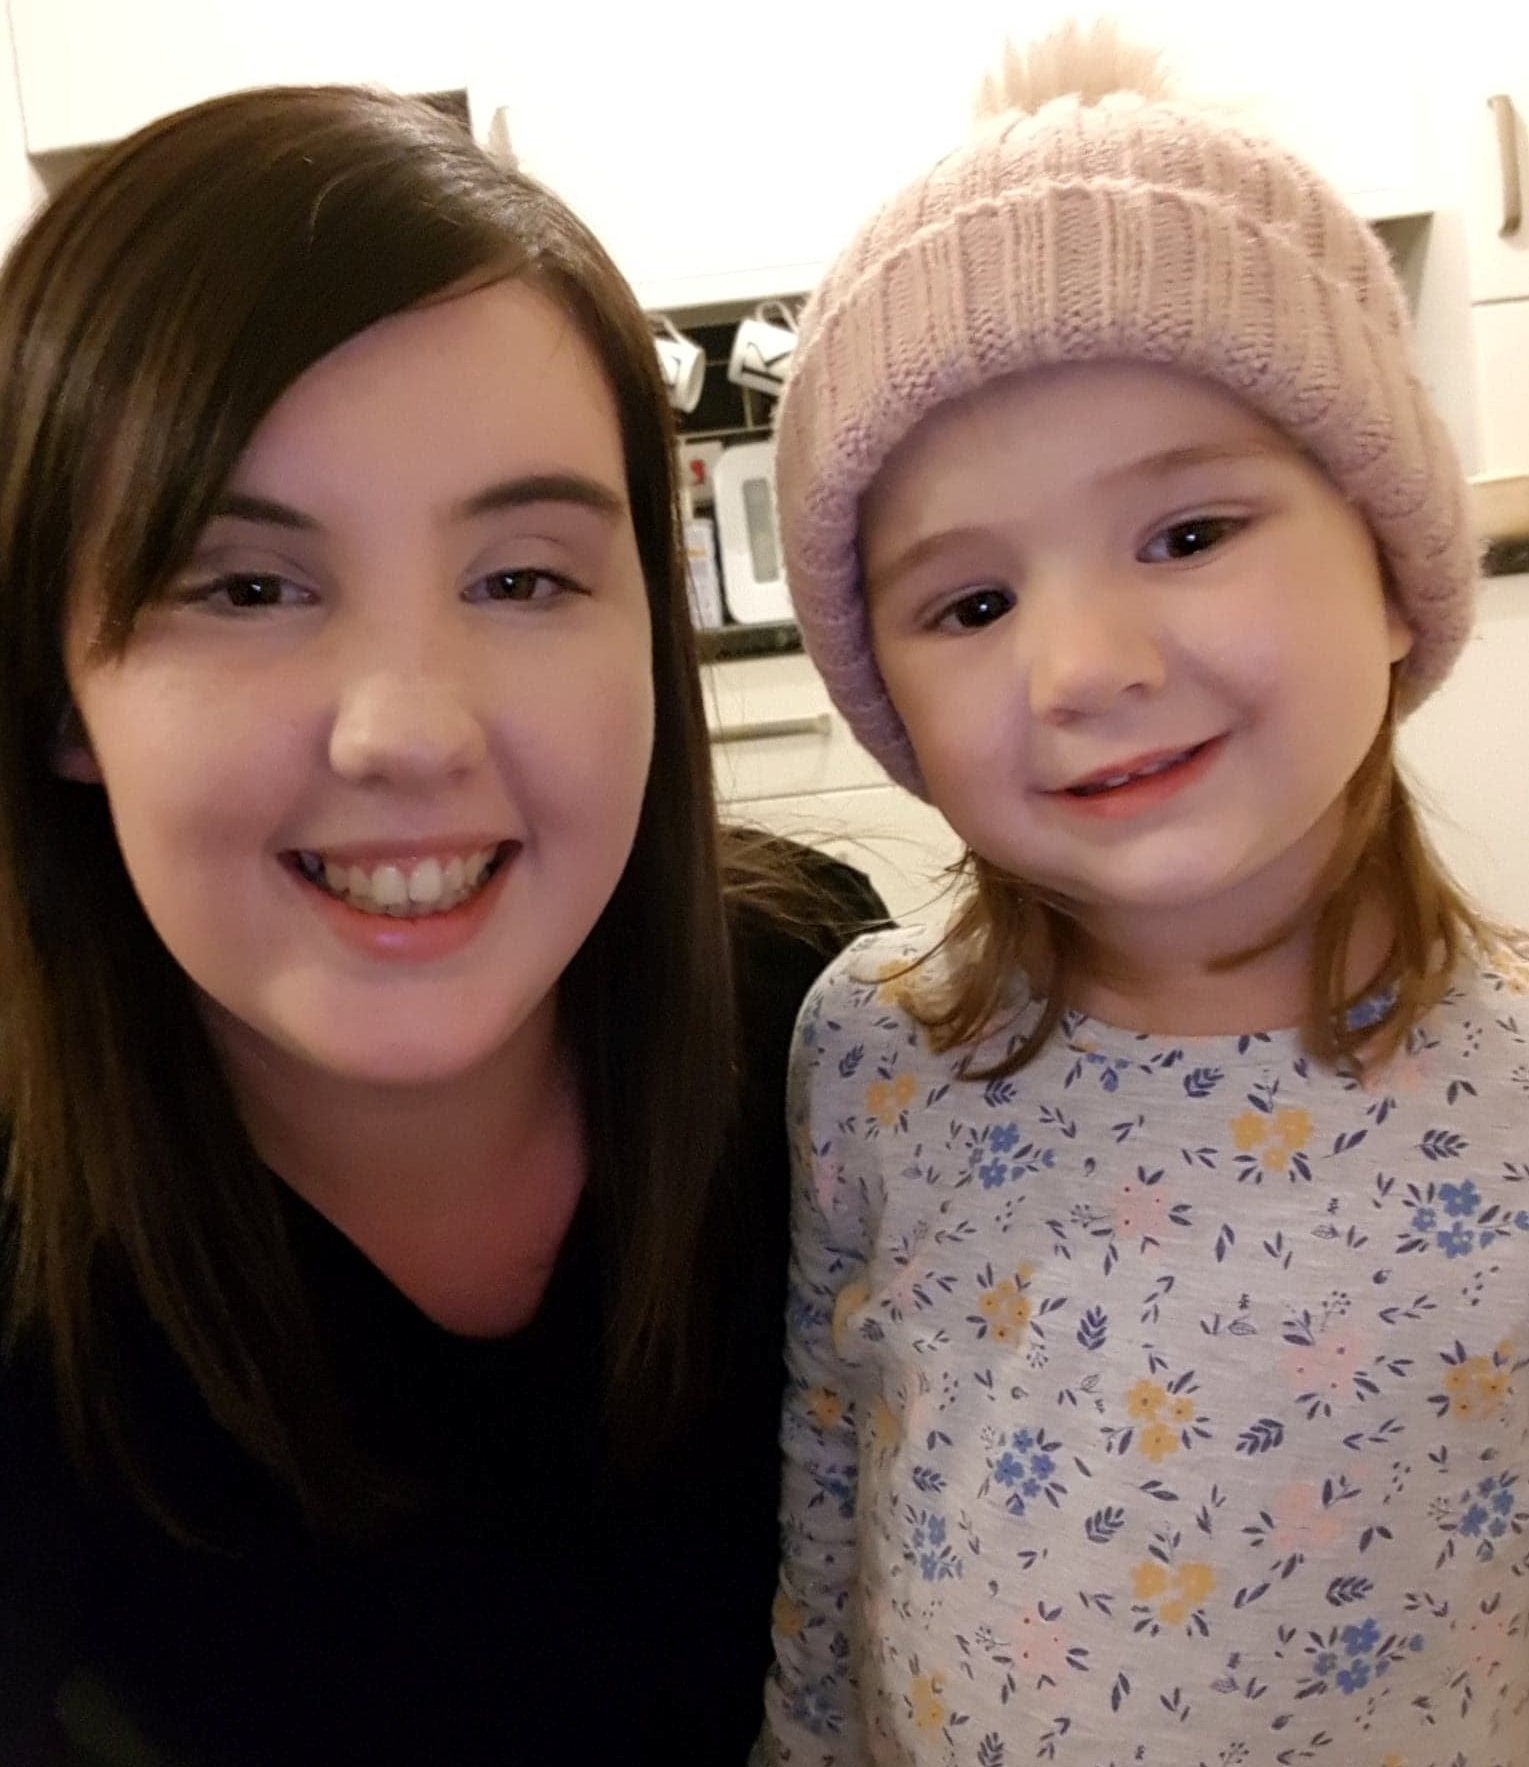 Rachael Hanley. ***ONLINE EMBARGO: Tuesday, November 20, 2018, 18:00 Hours UK Time (GMT)*** Rachael Hanley with Evie-Mae. See SWNS story SWLEnote; A mum whose young daughter has a serious breathing condition found a cruel note on her car after parking in a blue badge space -- saying her two-year-old ?does not look disabled?. Rachael Hanley, 22, returned to her Renault Scenic to find the handwritten note from an angry female shopper who had earlier confronted her when she first arrived at the shopping centre. The note said she had been reported for misusing a blue badge on Thursday last week - and advised that she should bring a wheelchair for her daughter next time. To make matters worse, Evie-Mae unexpectedly began ?fitting and vomiting? when they returned to the car and was left needing ?basic life support? following a full body shaking seizure.